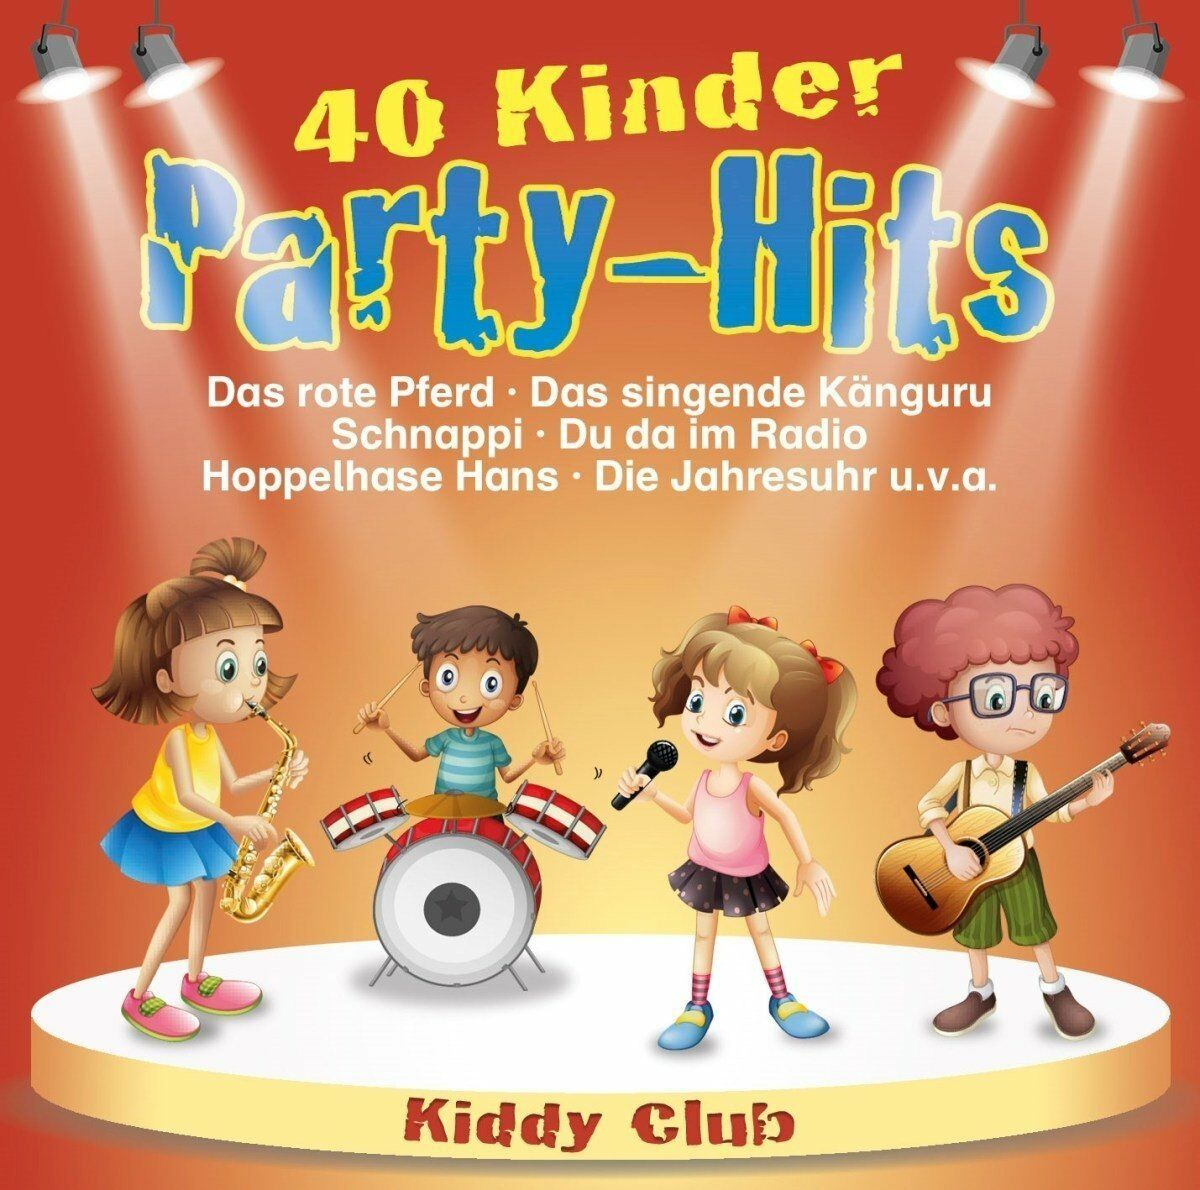 Kinderessen Party Kiddy Club 40 Kinder Party Hits 2 Cd